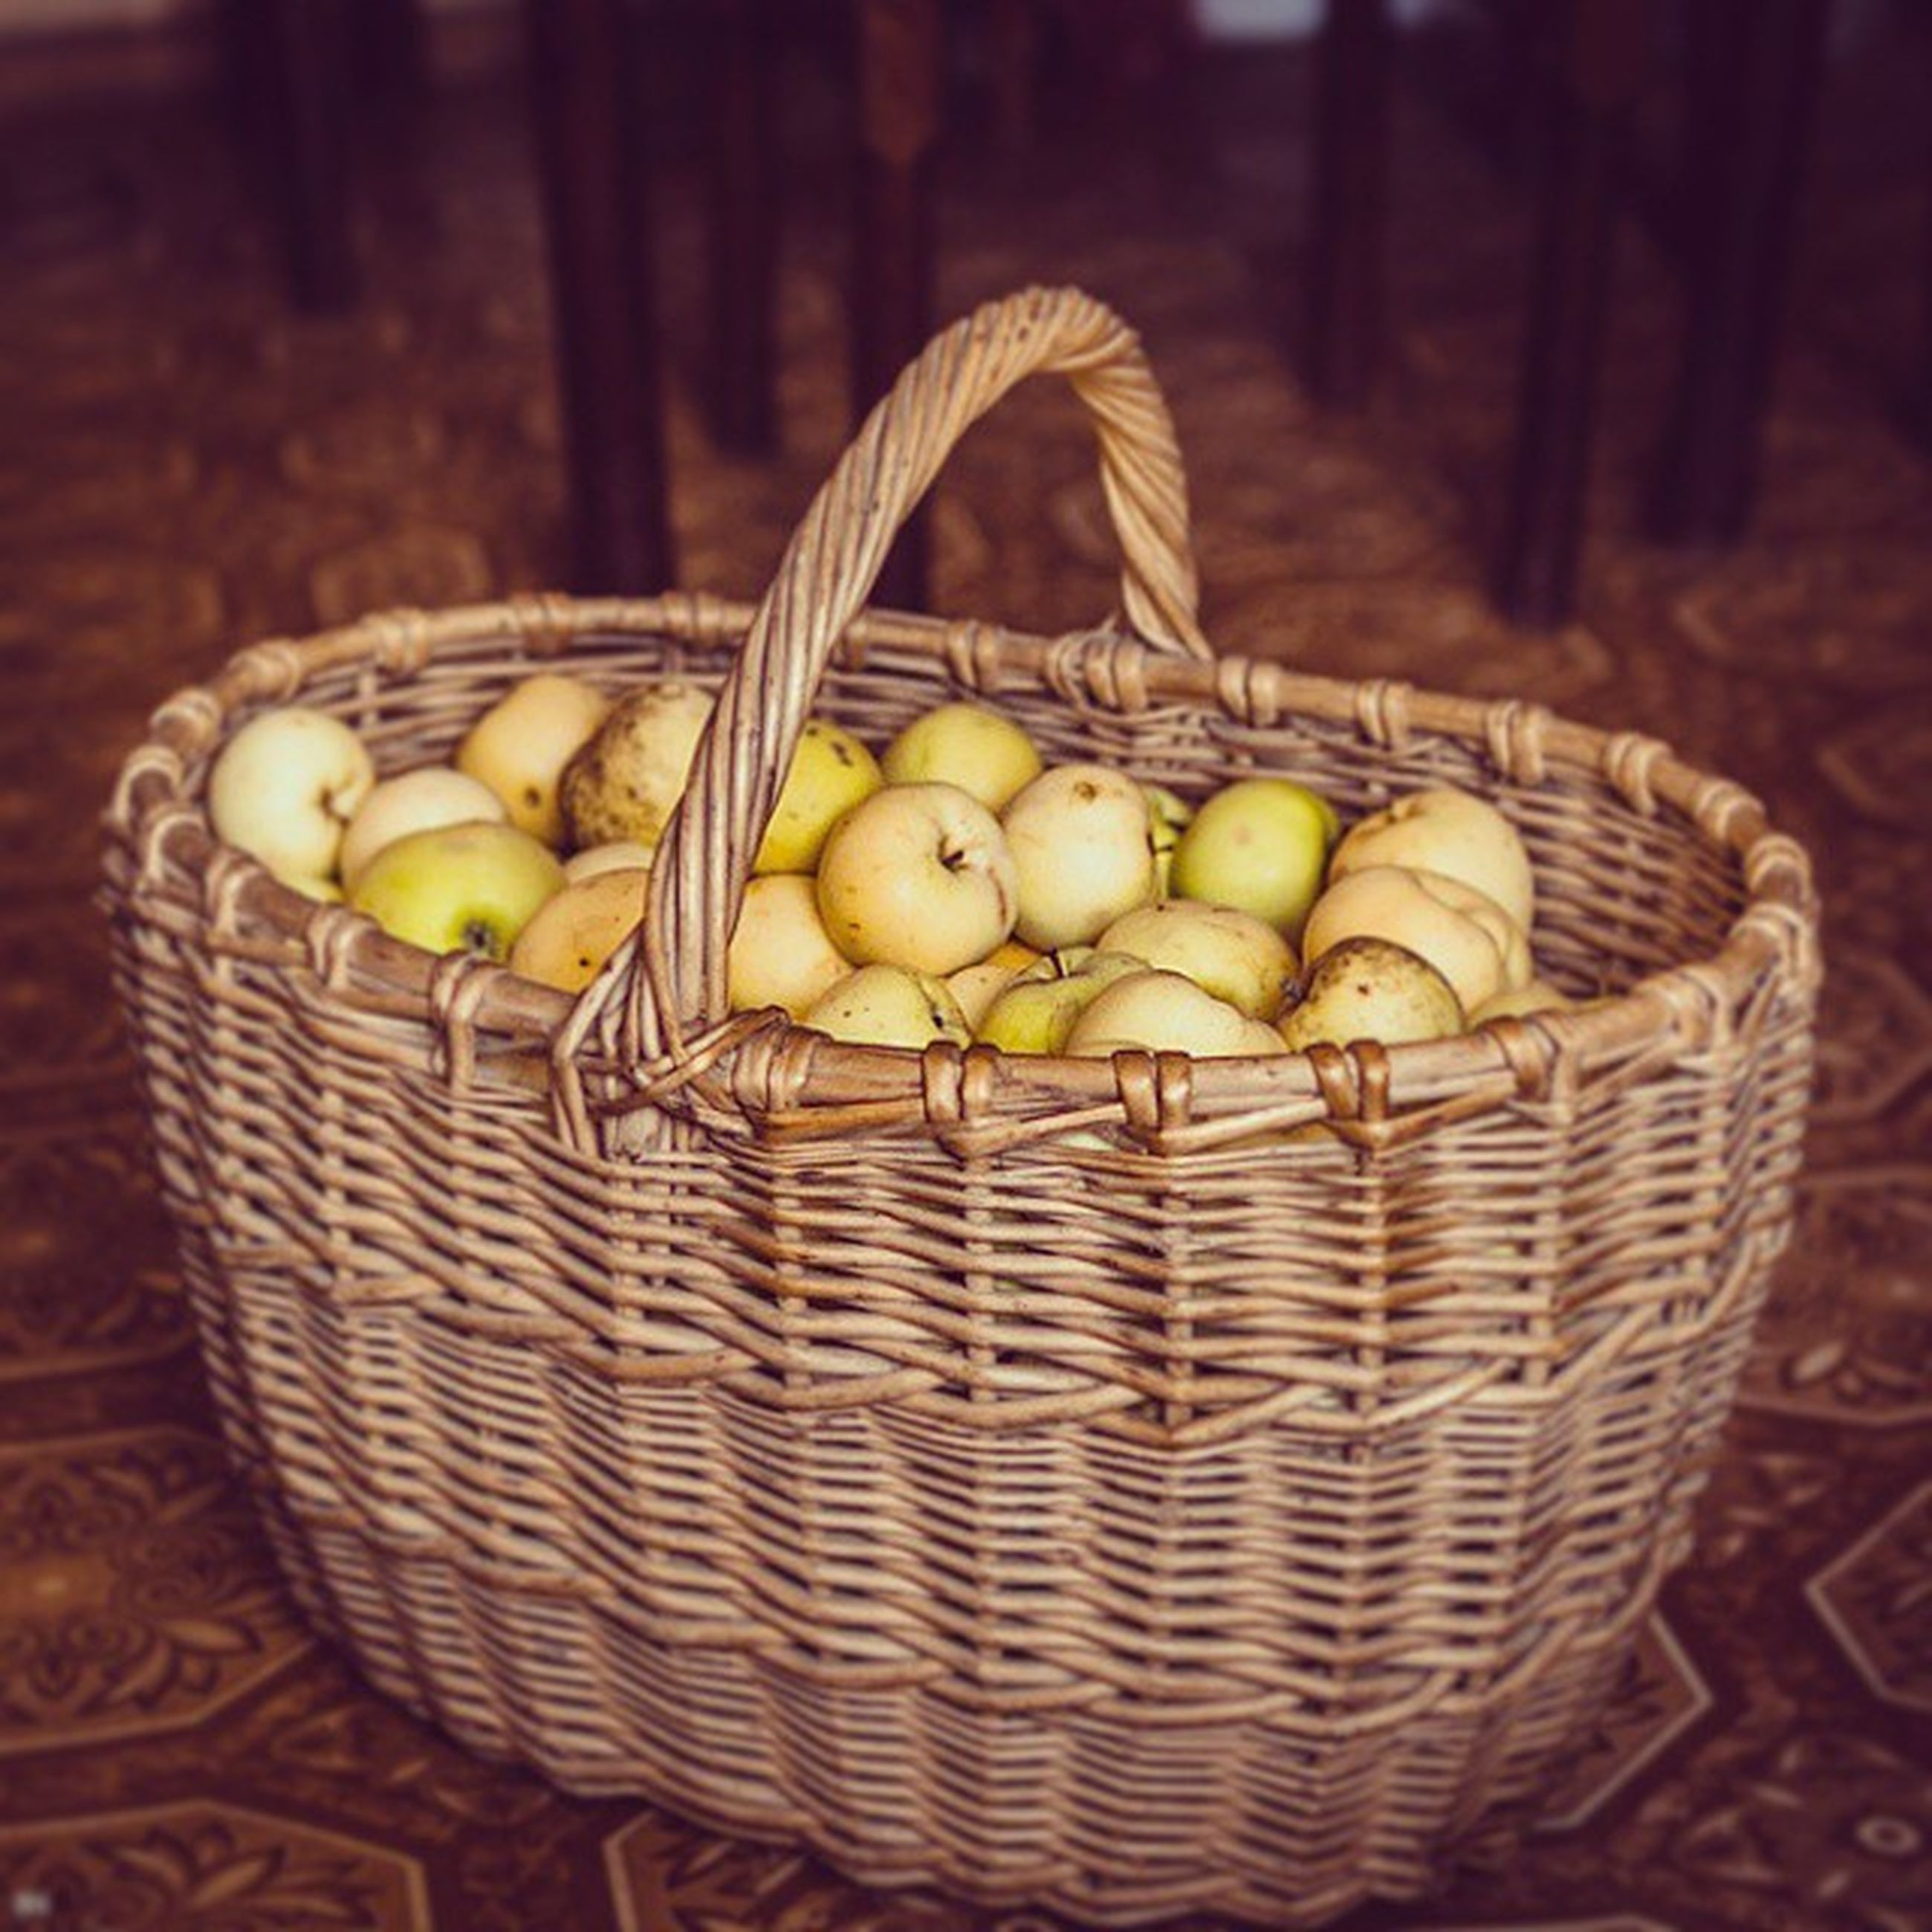 food and drink, food, healthy eating, freshness, fruit, close-up, indoors, still life, focus on foreground, vegetable, table, basket, no people, selective focus, organic, raw food, day, high angle view, bowl, ripe